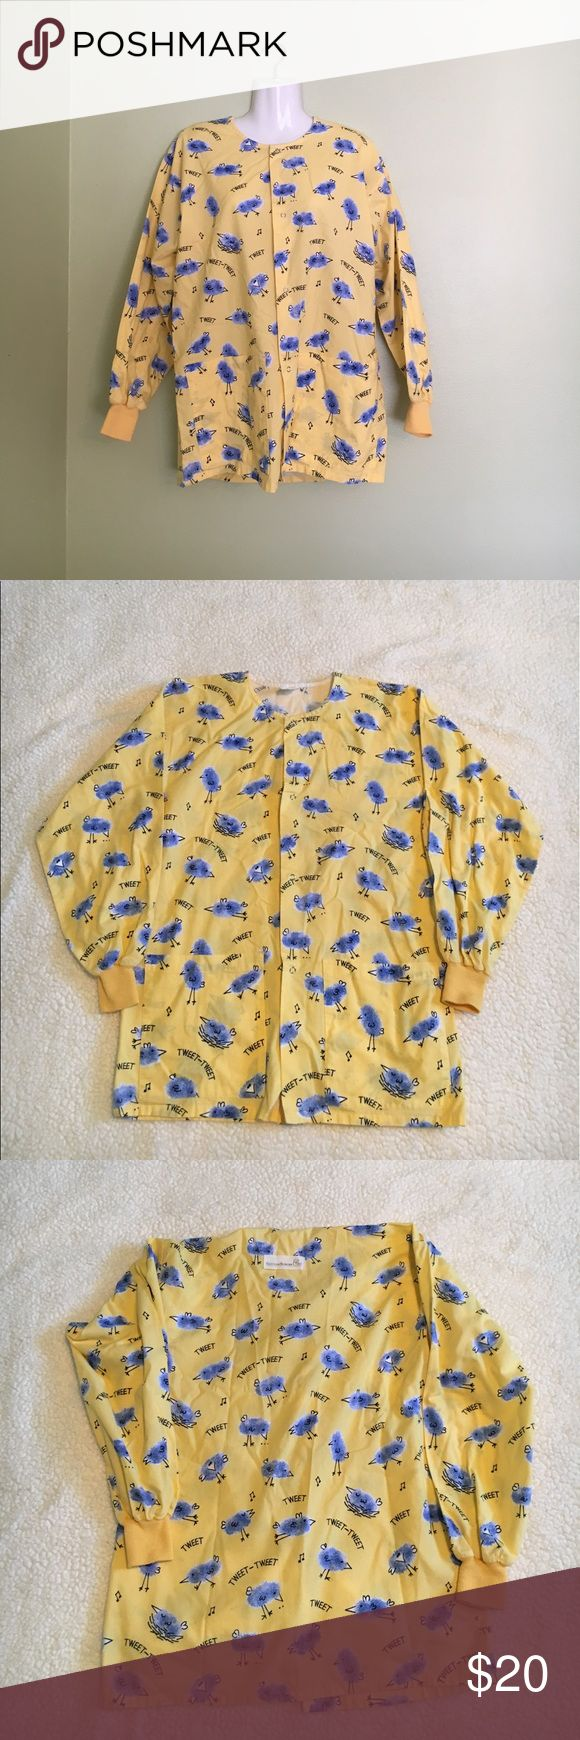 """TWEET birdie bright yellow scrub jacket in XS TWEET birdie bright yellow scrub jacket in extra small for women   Adorable scrub jacket/uniform  made by Cotton Scrub and Co featuring a bright yellow hue with blue birdies and the words """"TWEET"""" throughout   The perfect scrub jacket for pediatrics or to just brighten your patients day   Scrub jacket measures 28.5 inches in length and 18 inches from below the armpit down   Jacket comes from a clean, smoke-free home Cotton Scrubs & Co Jackets…"""